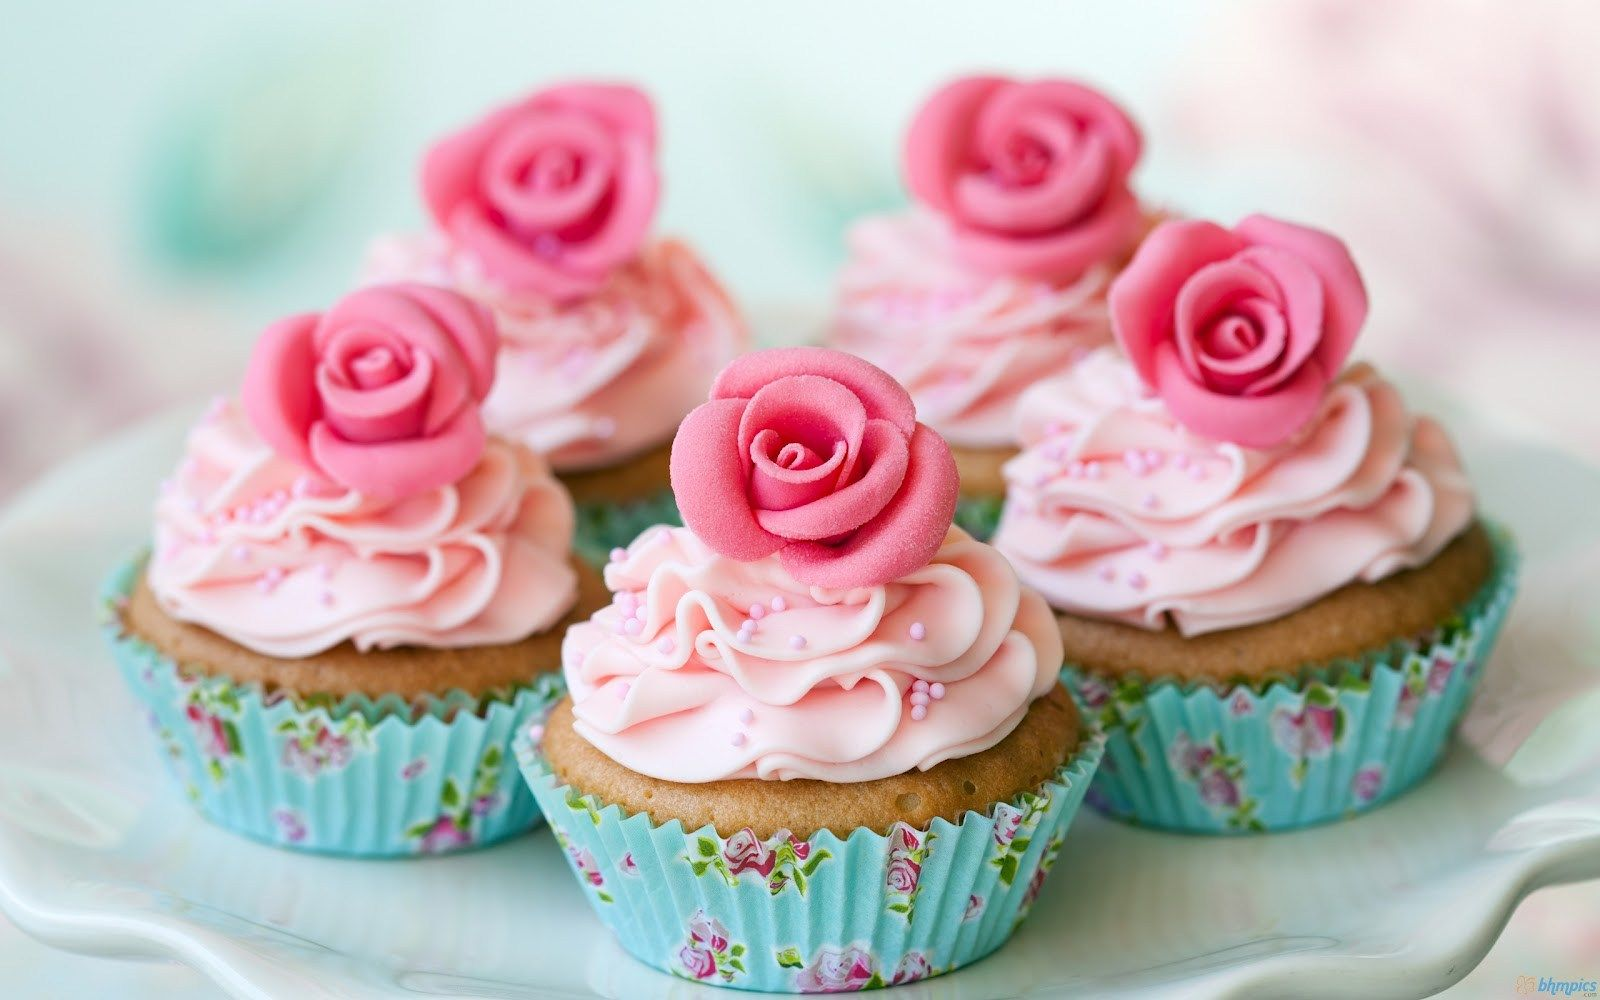 cupcakes wallpaper android apps on google play | hd wallpapers